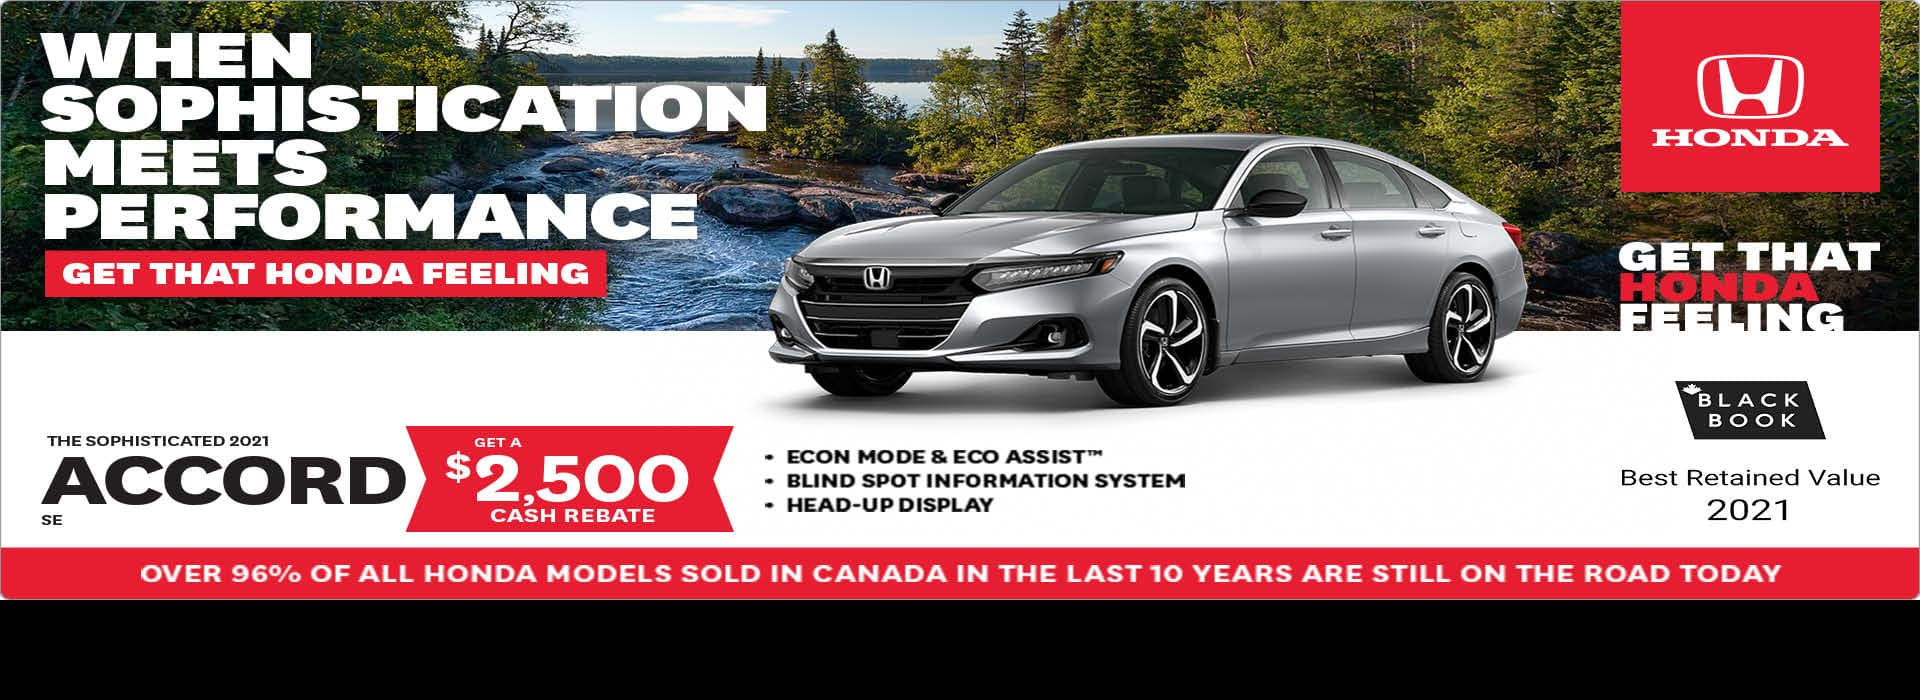 2021_Accord_Home_Page_Desktop_July2021